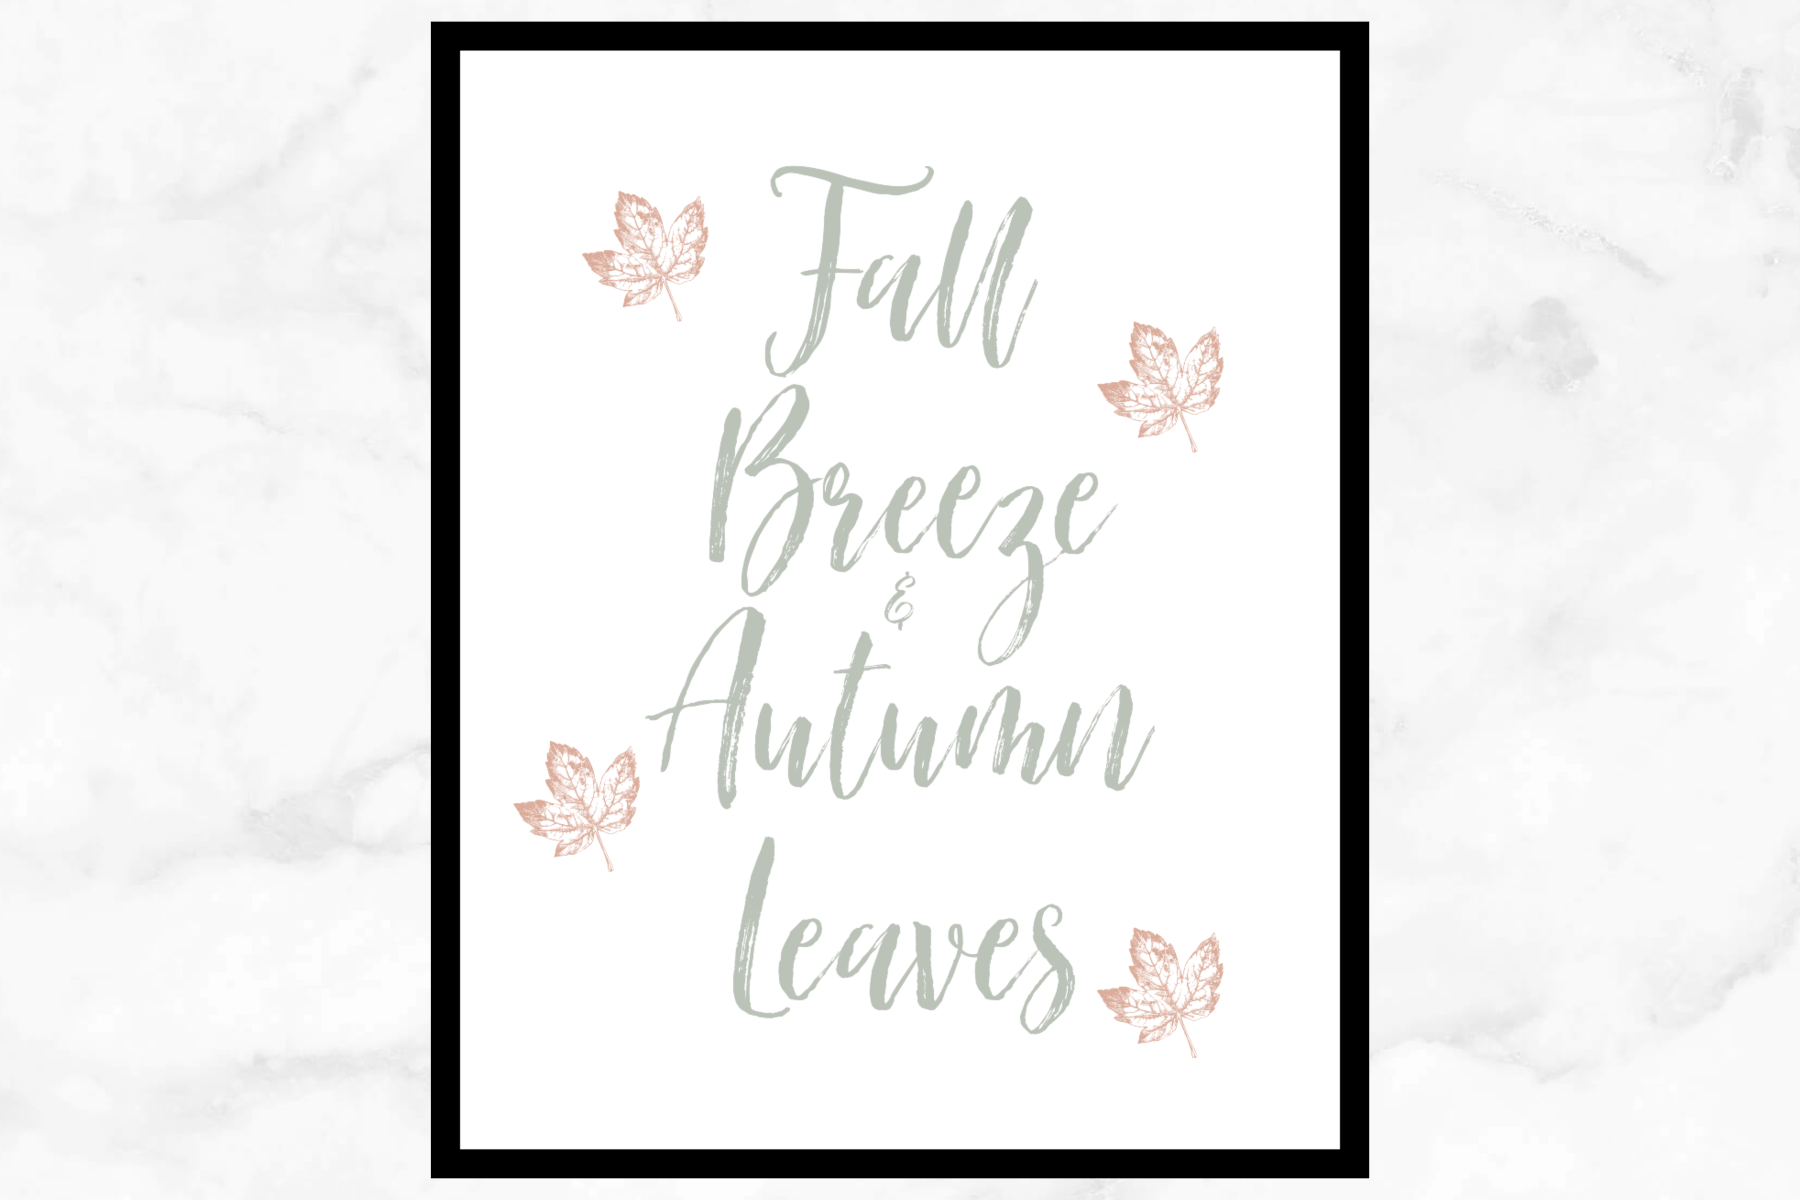 Fall Breeze & Autumn Leaves Free Printable #autumnleavesfalling Fall Breeze & Autumn Leaves Free Printable. Click here to download this free Fall printable. Fall decor. Fall wall art. Free Fall decor. #autumnleavesfalling